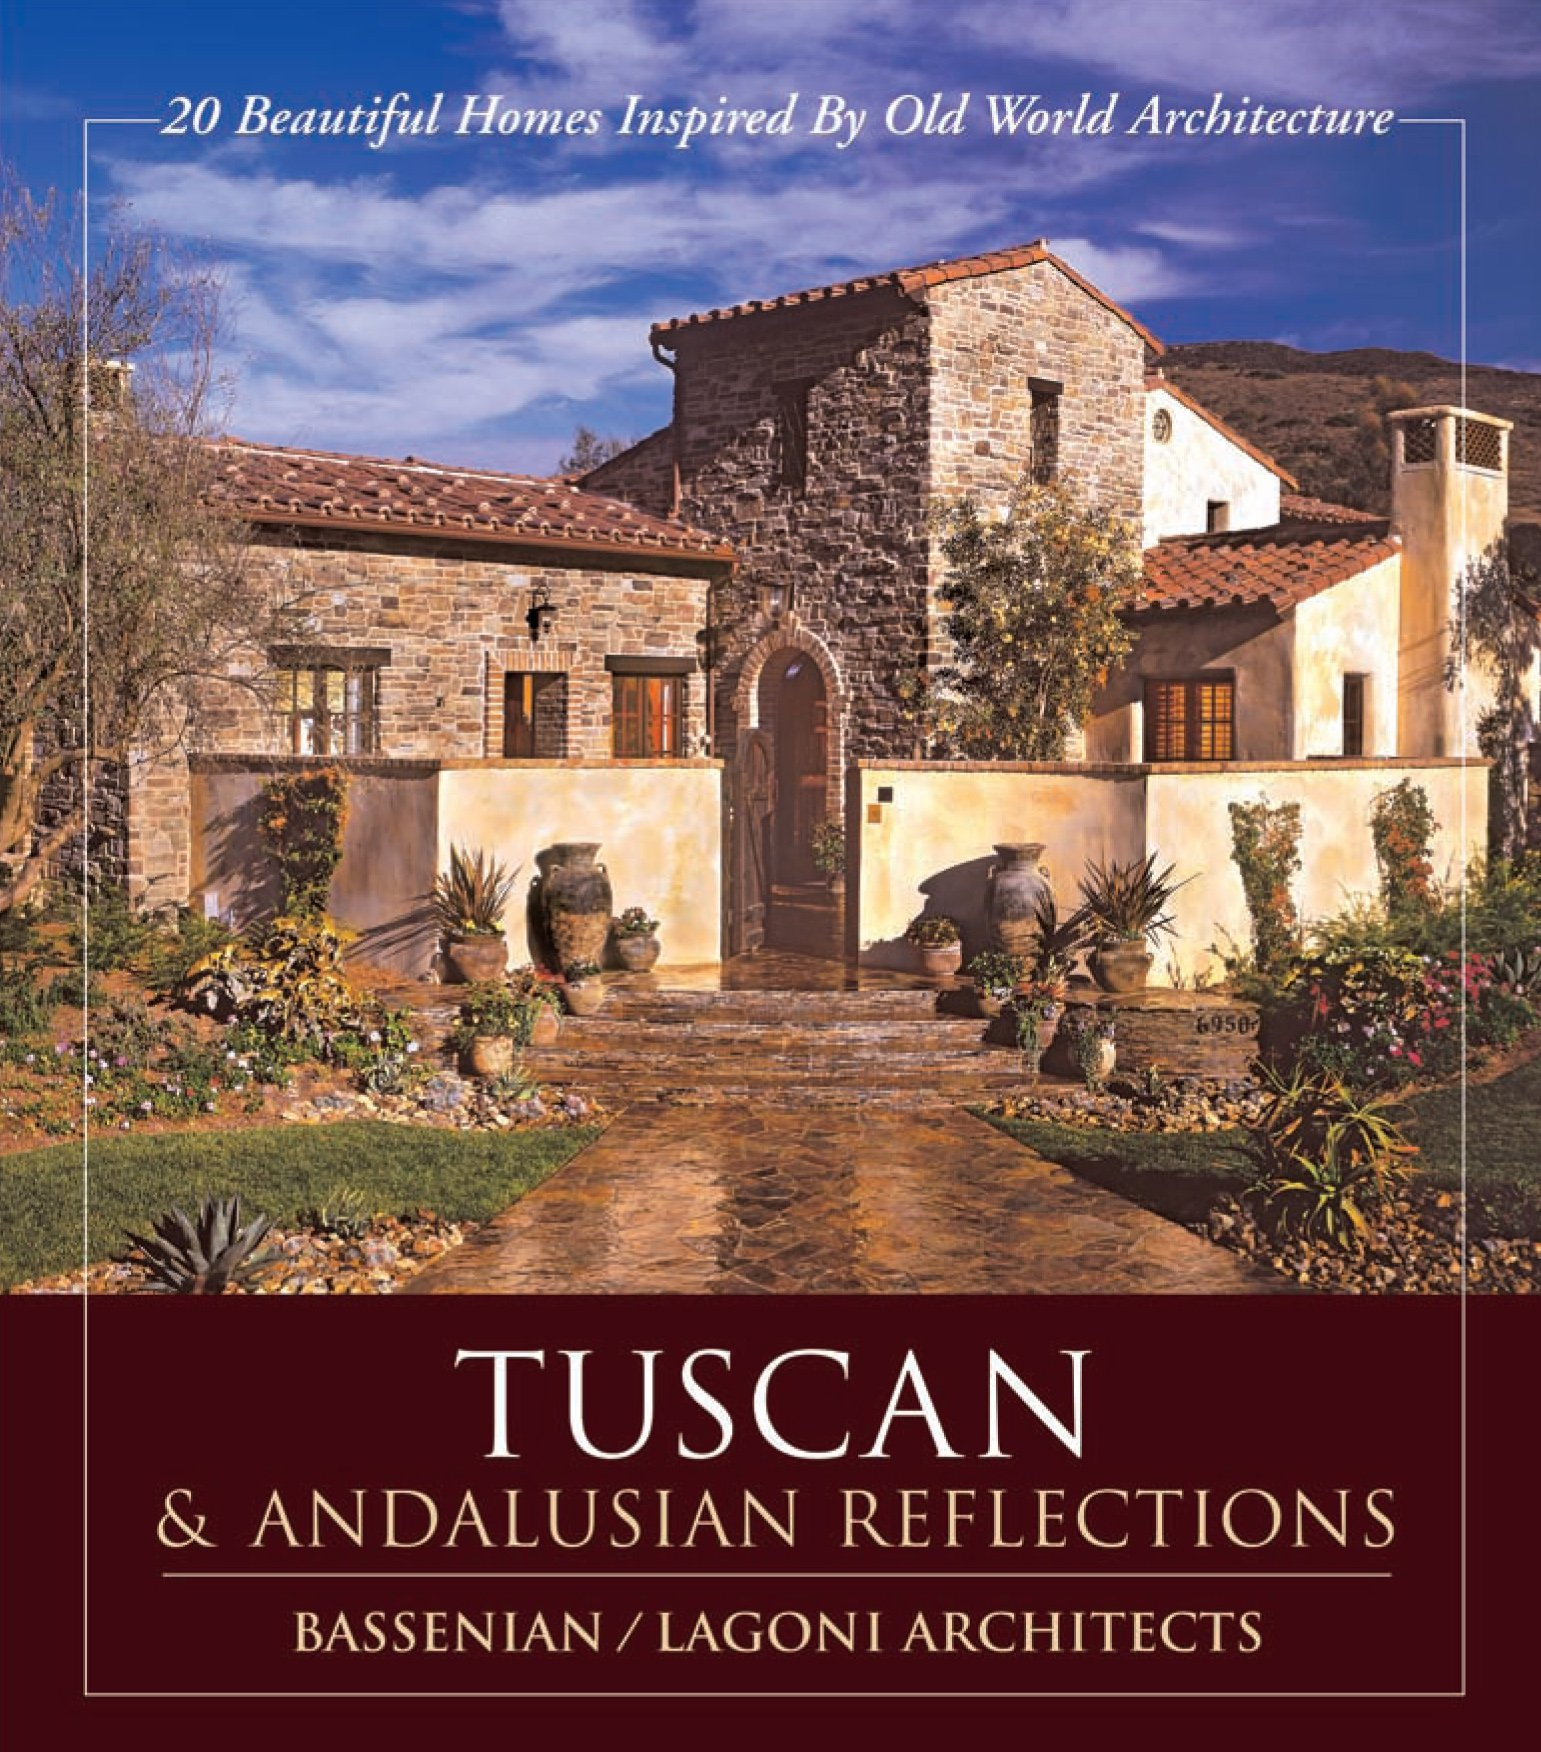 Tuscan & Andalusian Reflections: 20 Beautiful Homes Inspired By Old on row house design, brittany house design, roman house design, thailand house design, england house design, german house design, normandy house design, morocco house design, santorini house design, spain house design, europe house design, bali house design, florida house design, turkey house design, holland house design, dubai house design, india house design, colorado house design, portofino house design, australia house design,